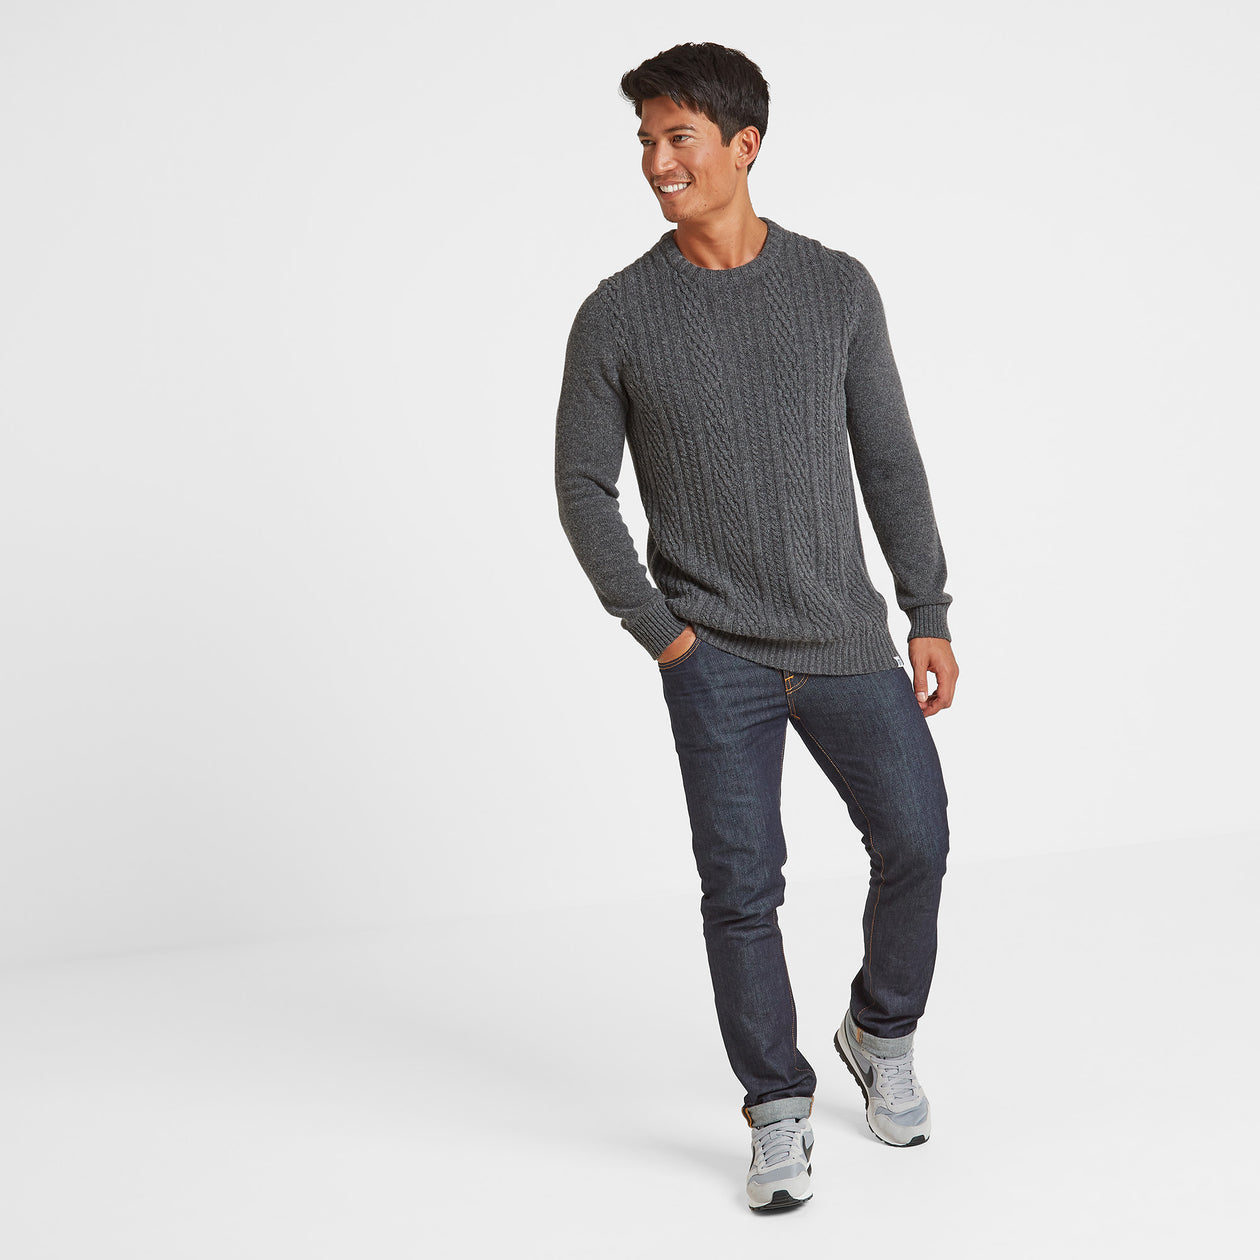 Murray Mens Cable Knit Jumper - Dark Grey Marl image 4